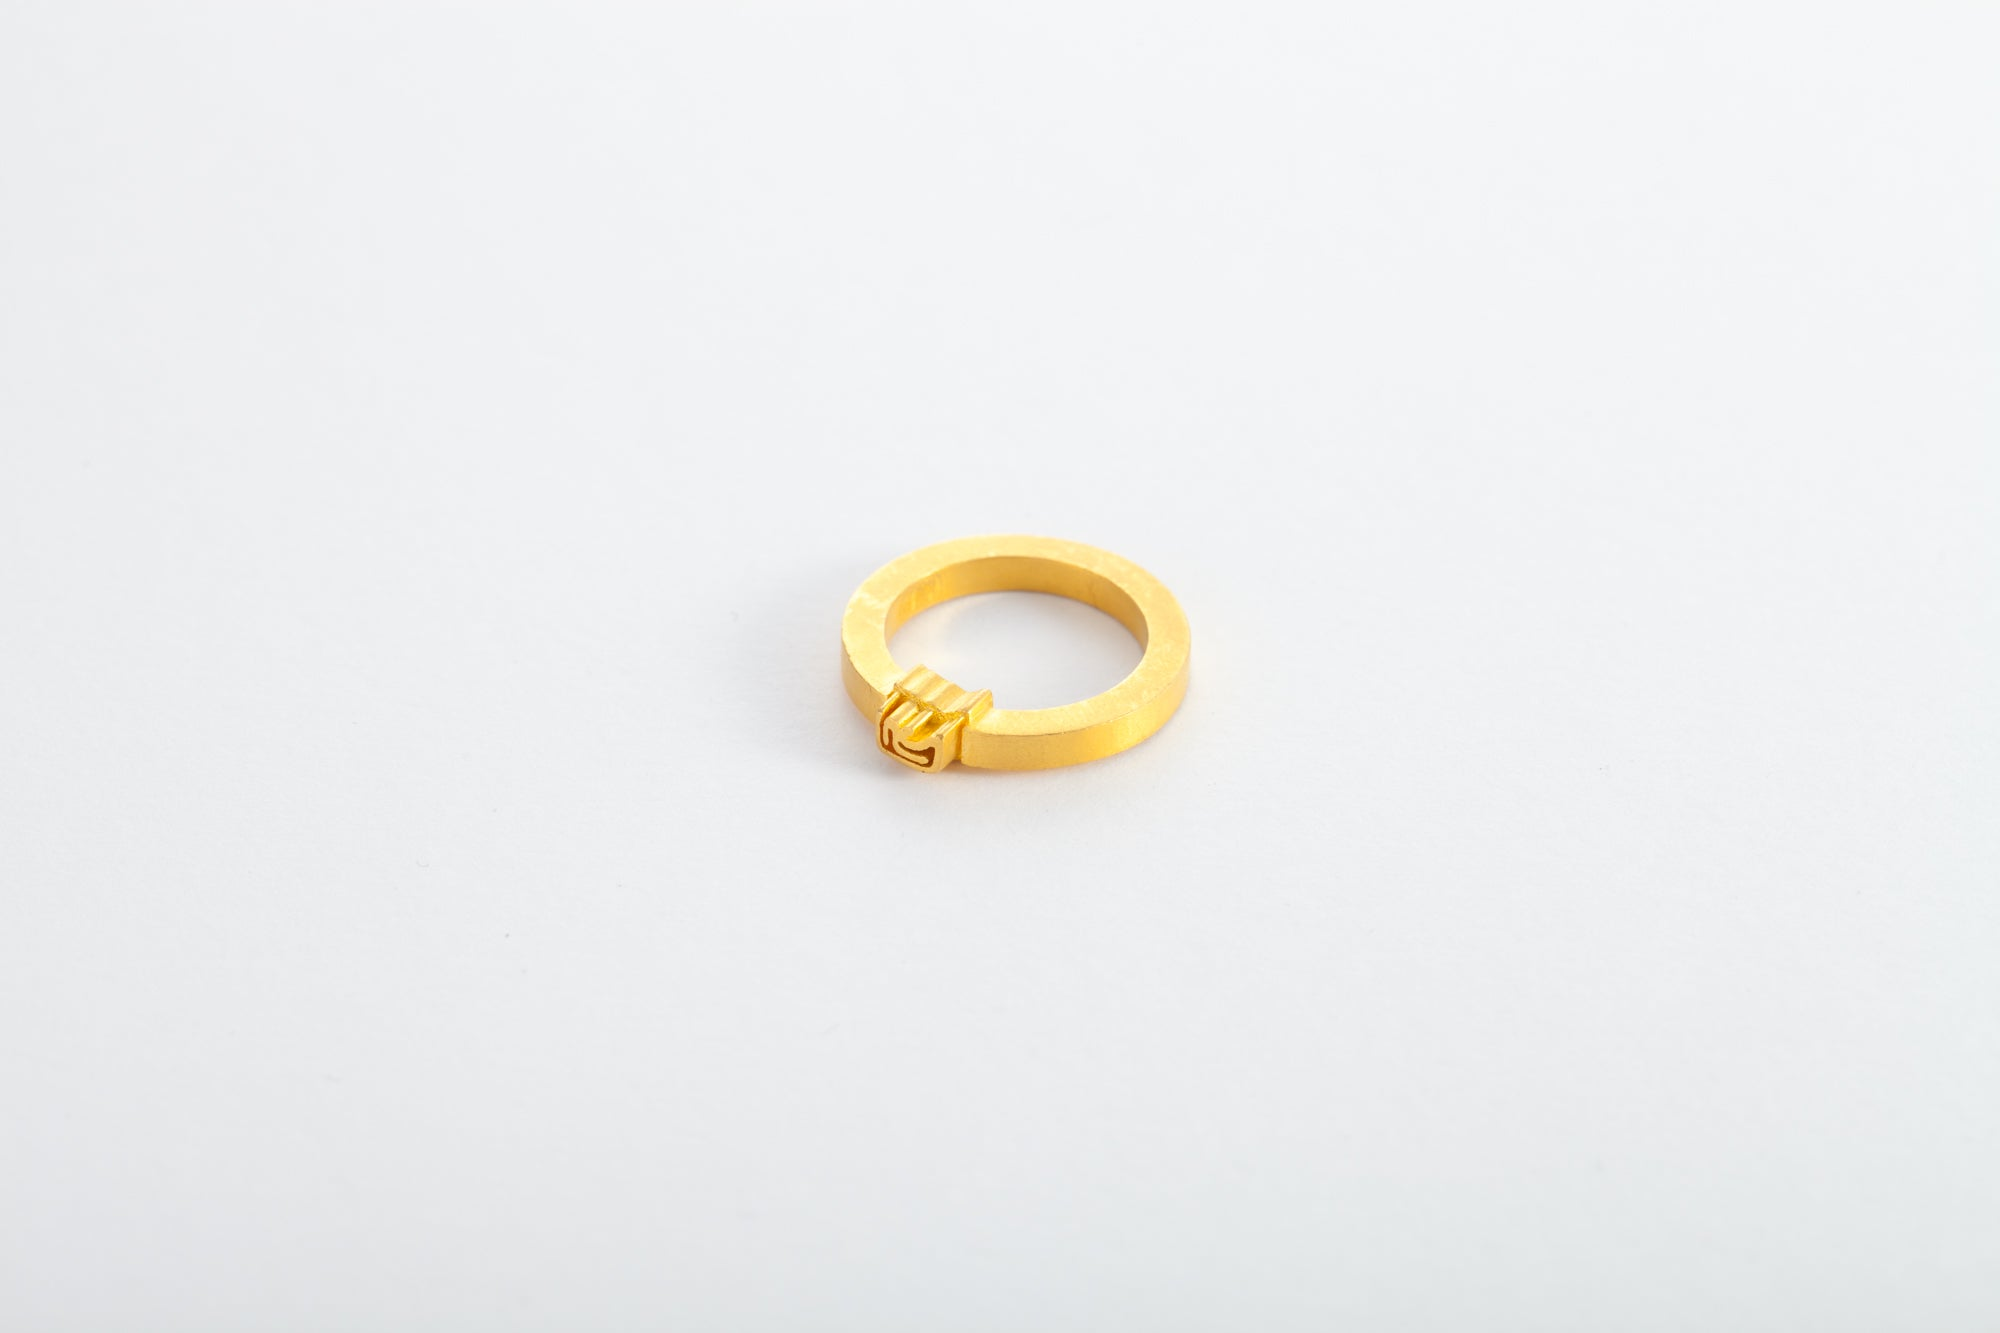 24k Two-Sides Golden Ring